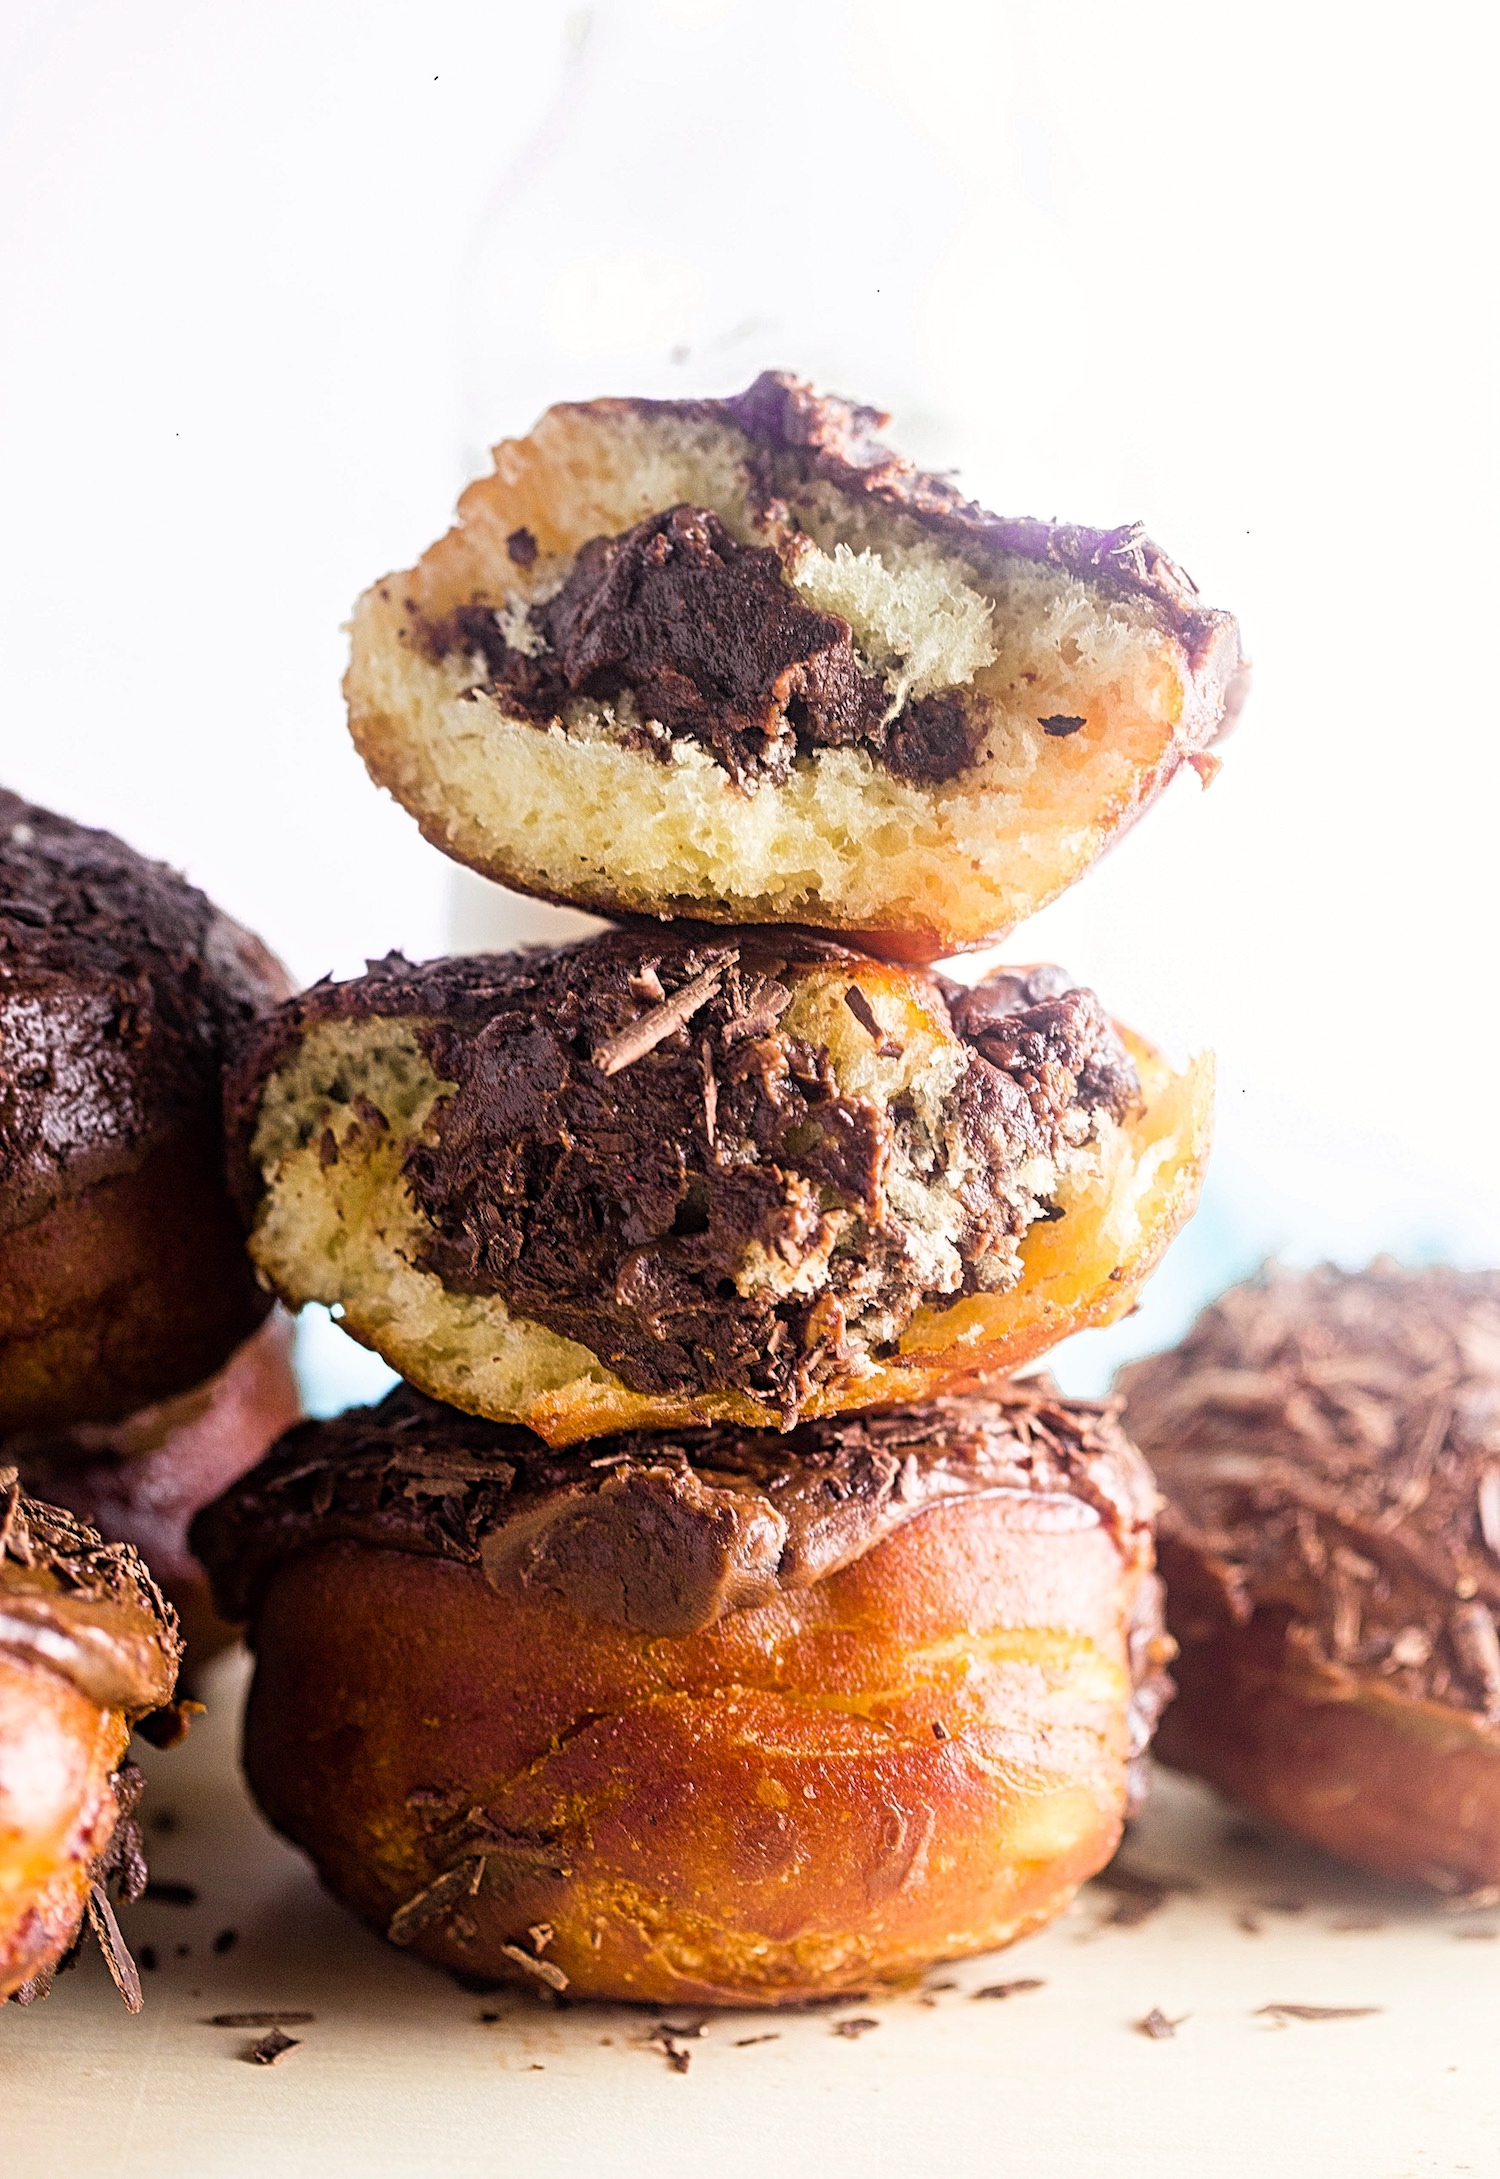 Fried Chocolate Explosion Donuts: perfect fried donuts filled with a creamy chocolate custard, topped with a rich chocolate glaze, and garnished with chocolate shavings. | TrufflesandTrends.com